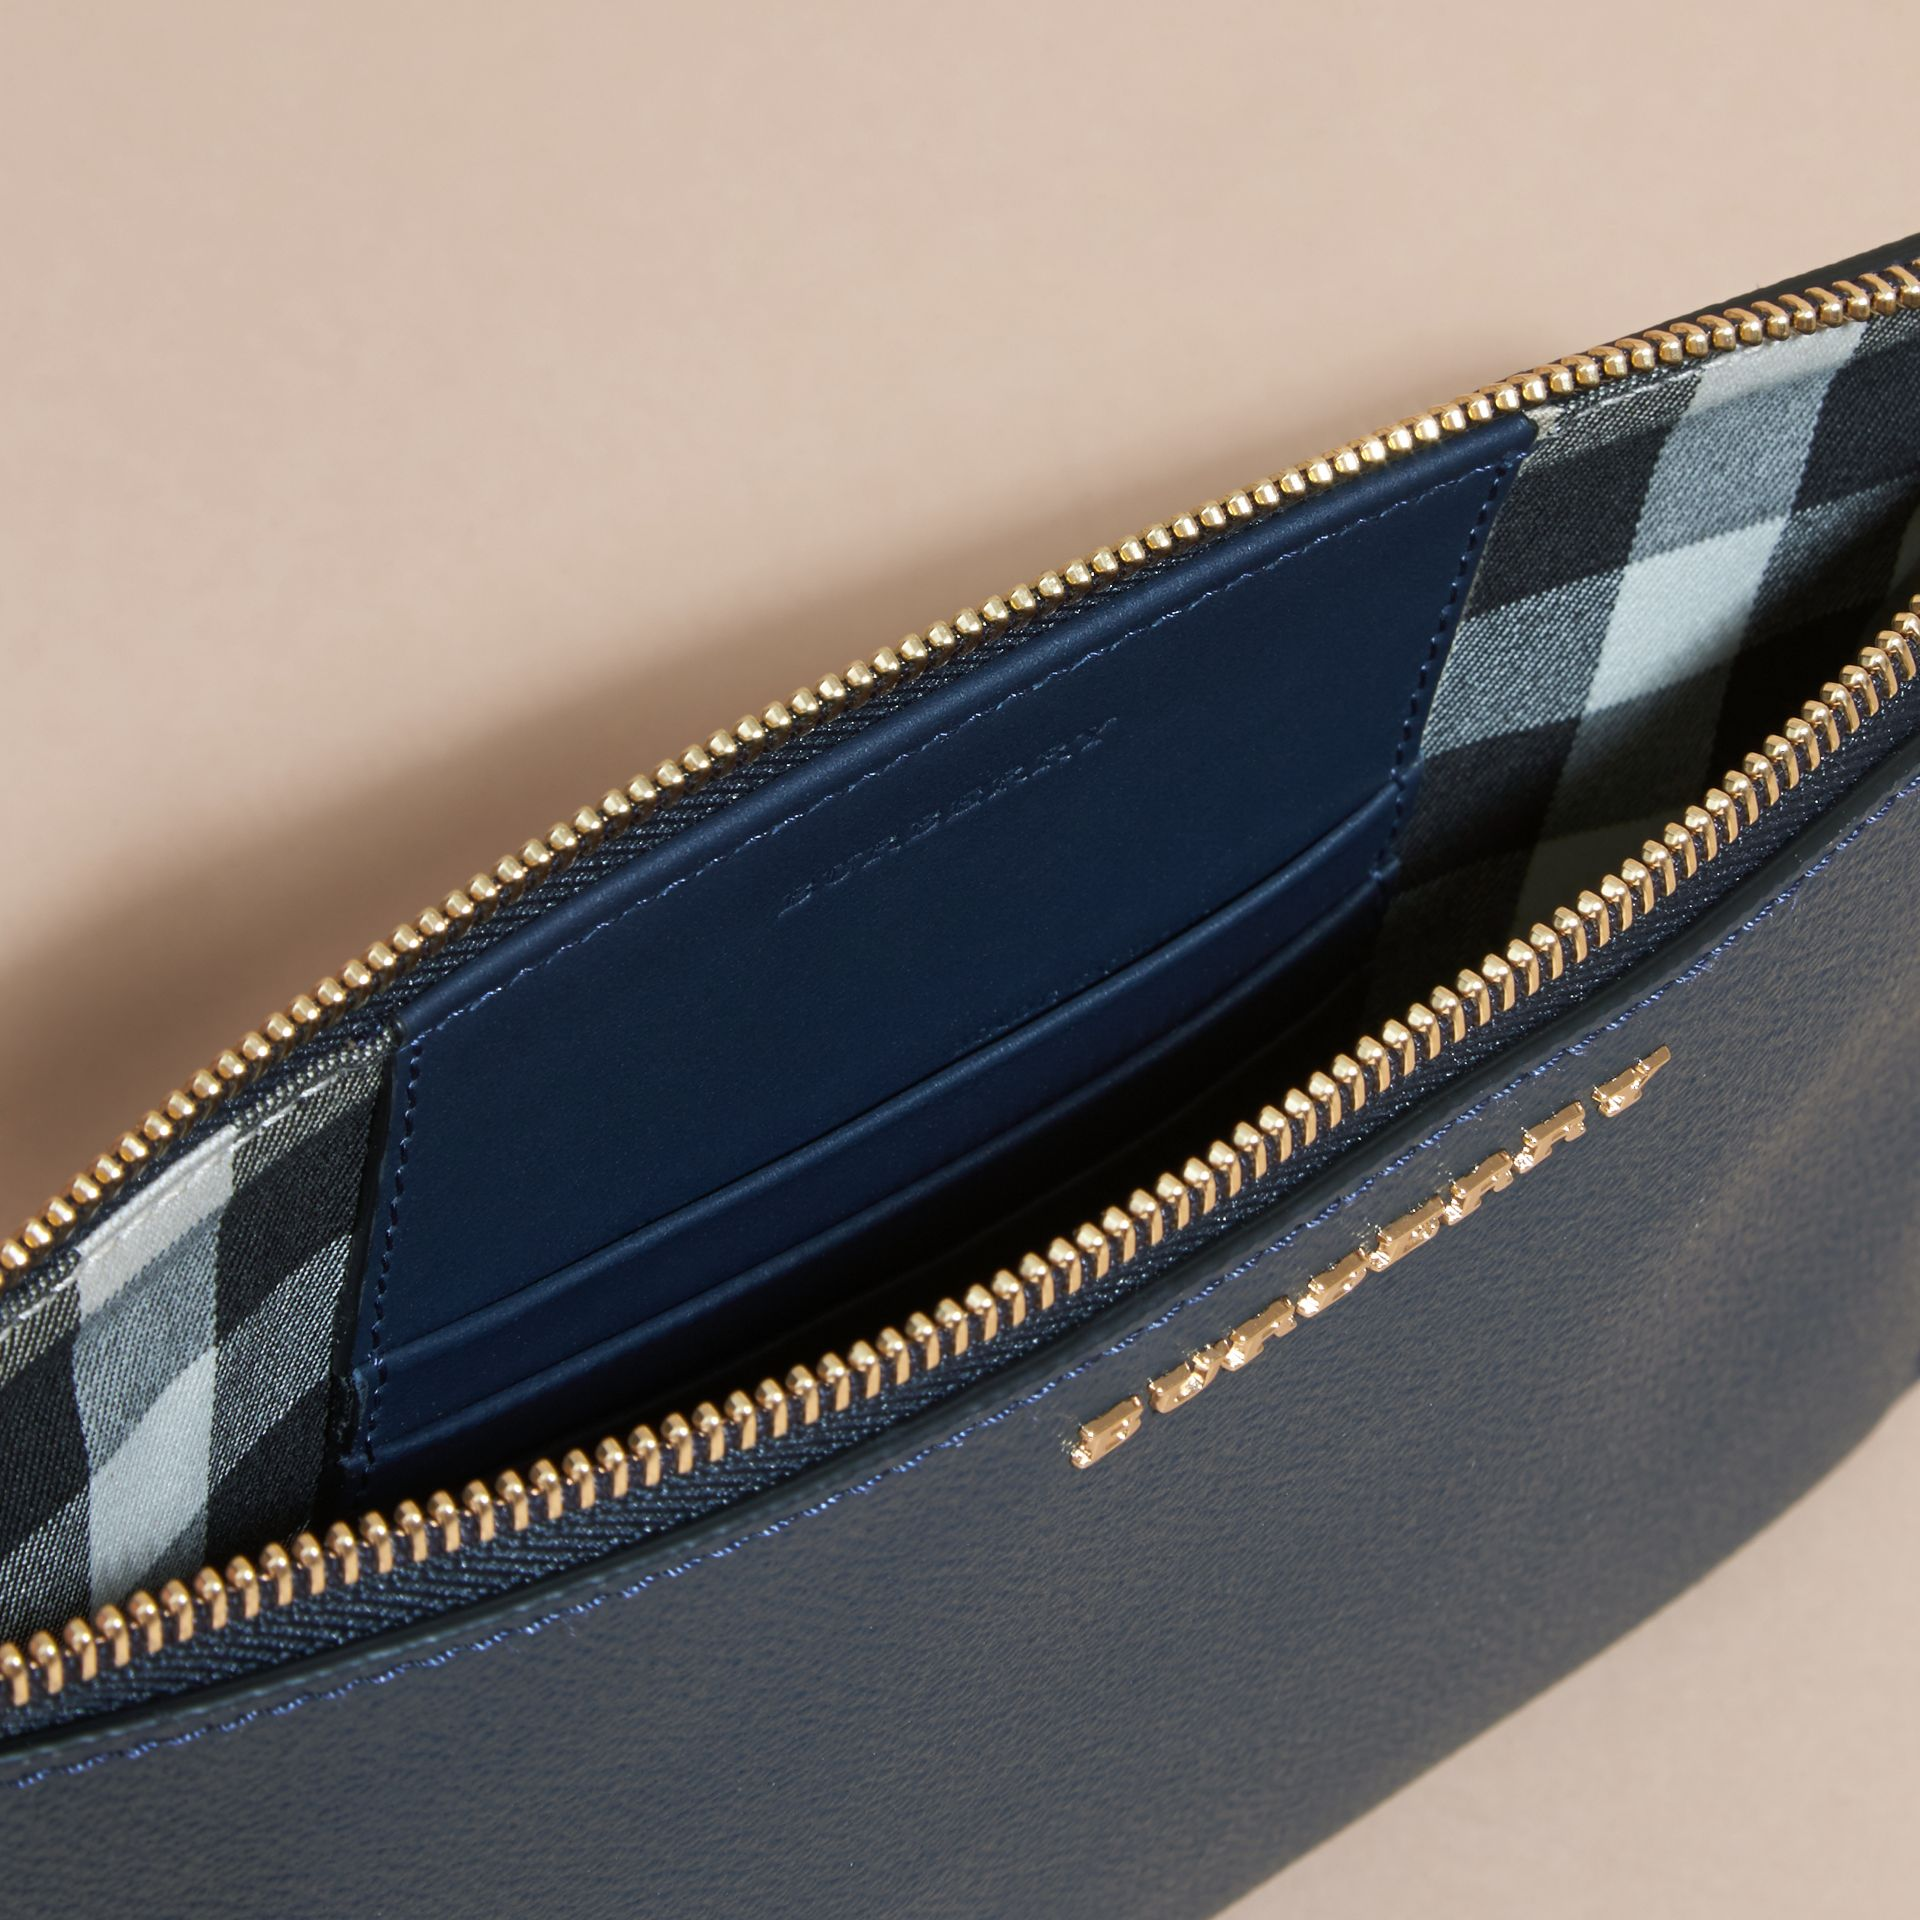 Leather Clutch Bag with Check Lining in Blue Carbon - Women | Burberry - gallery image 6